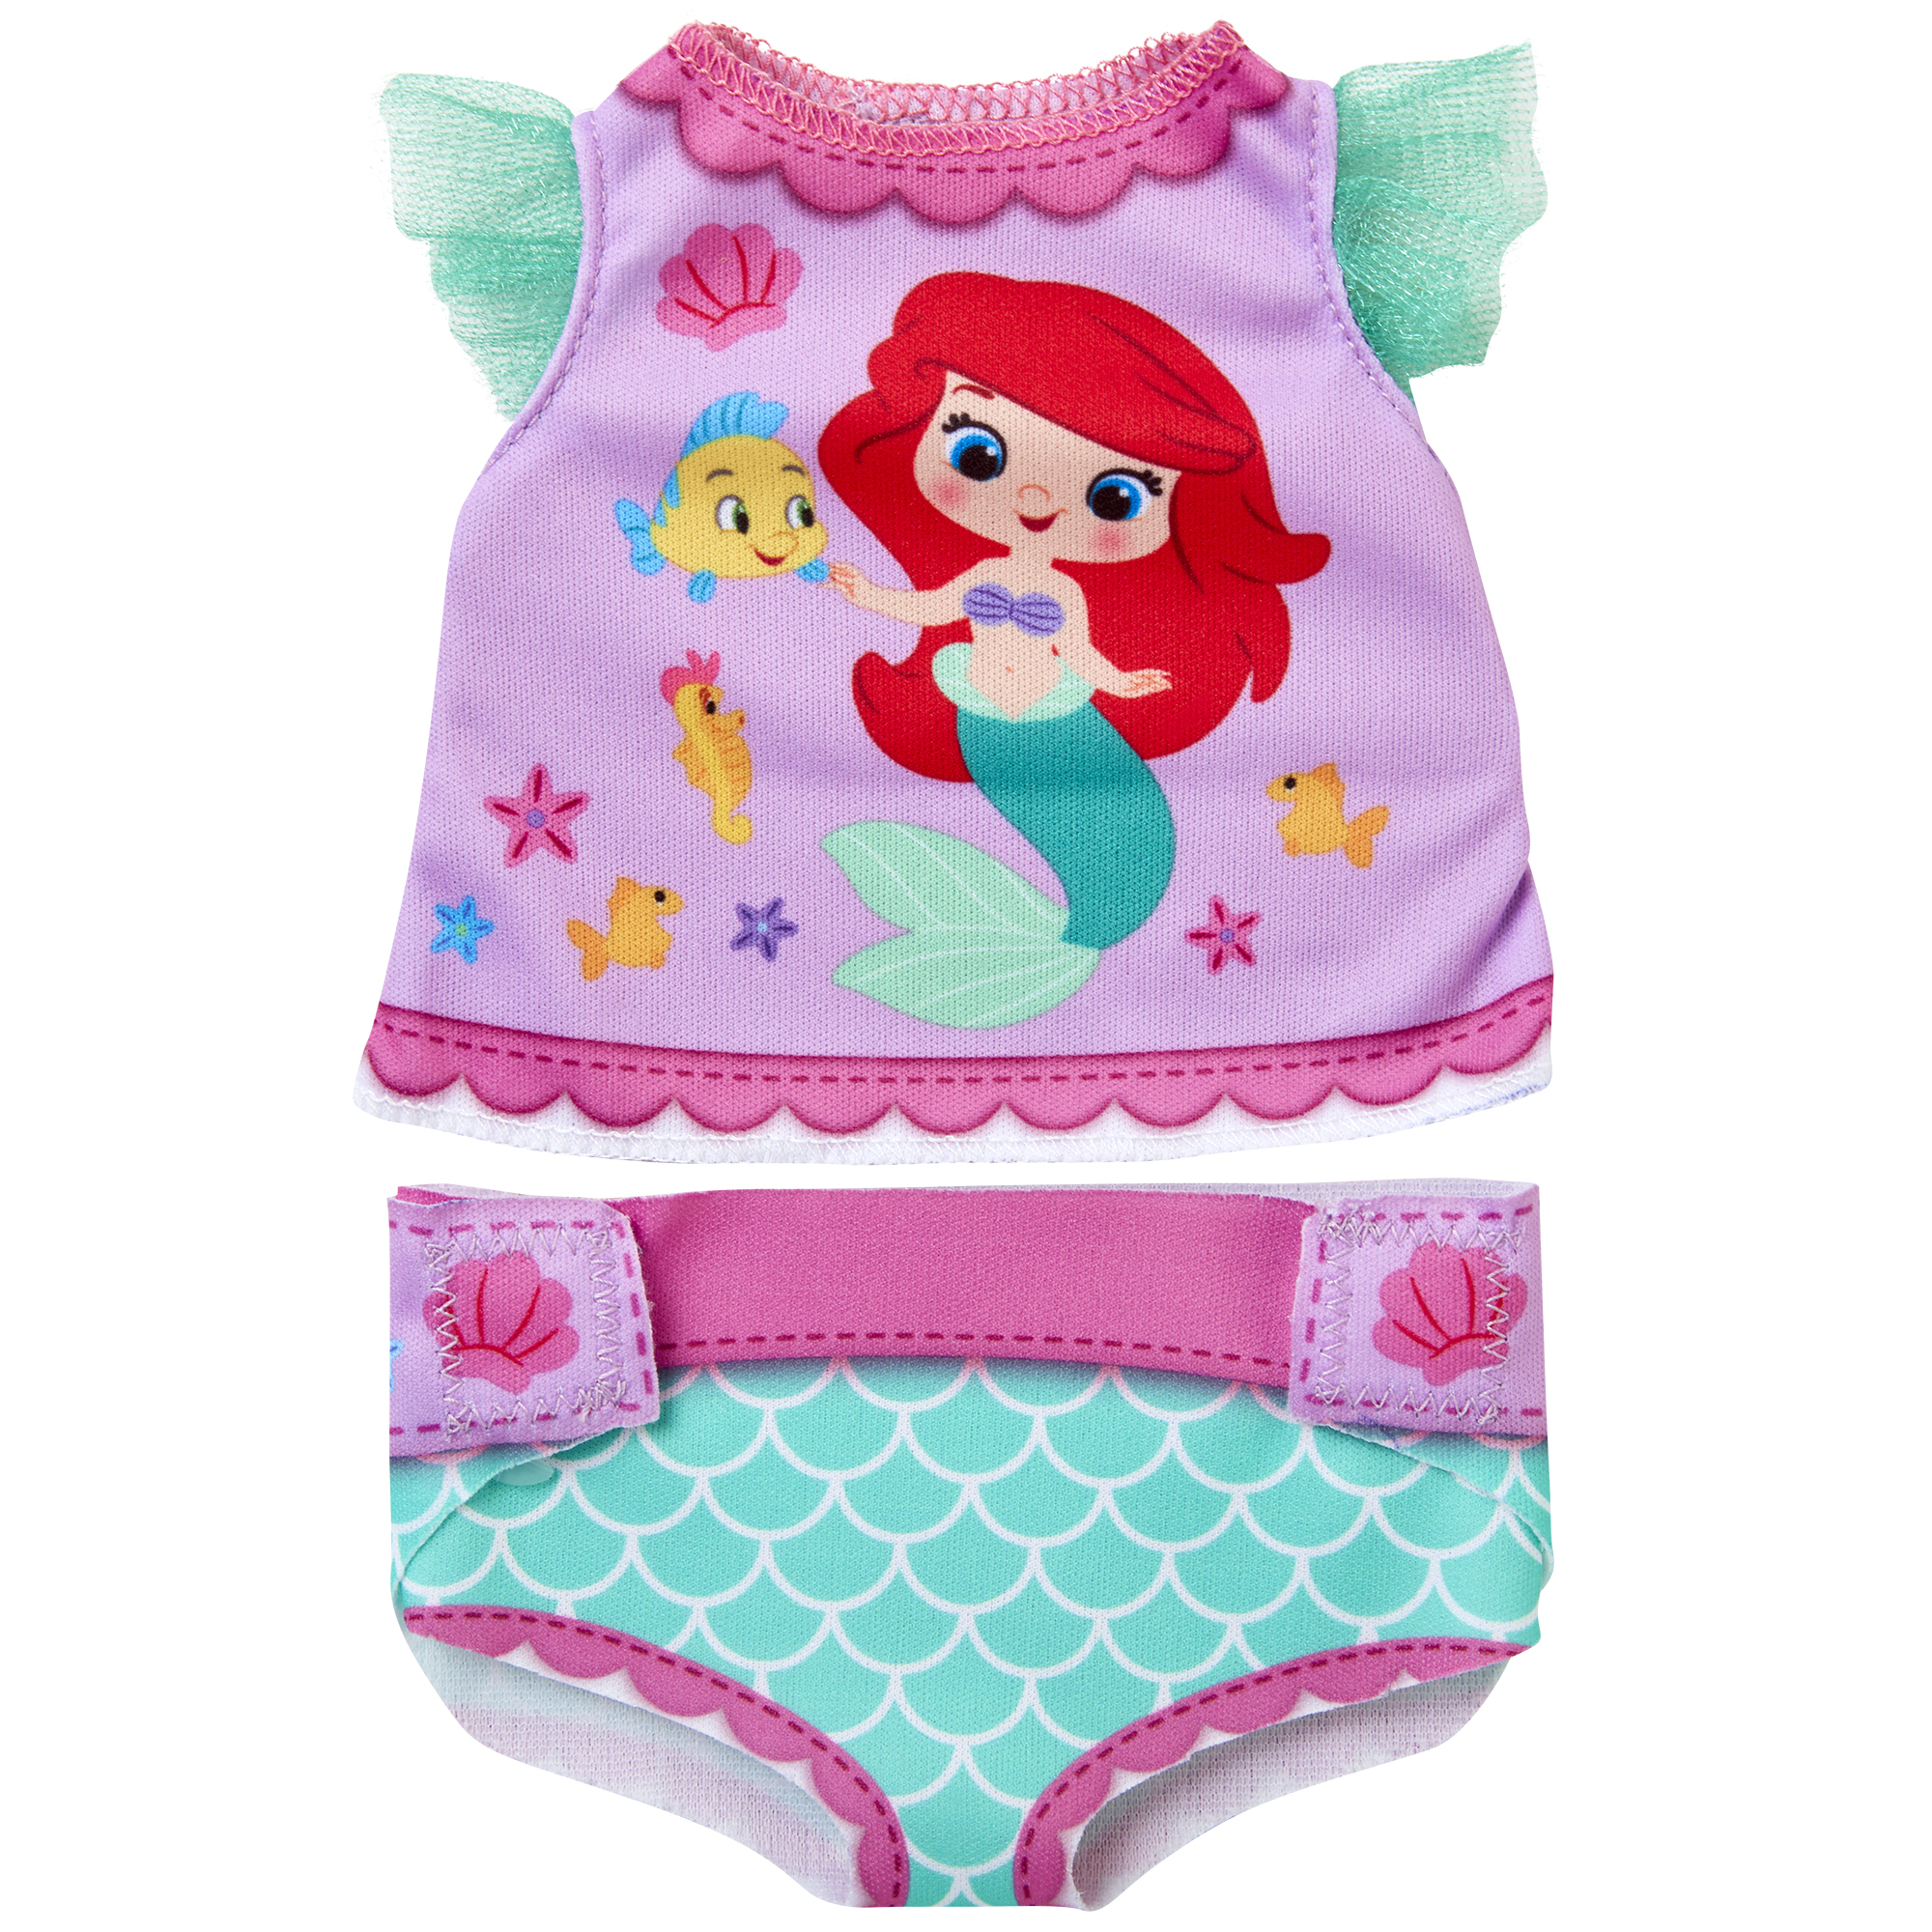 Ariel Diaper Dress Up Doll Accessory Pack